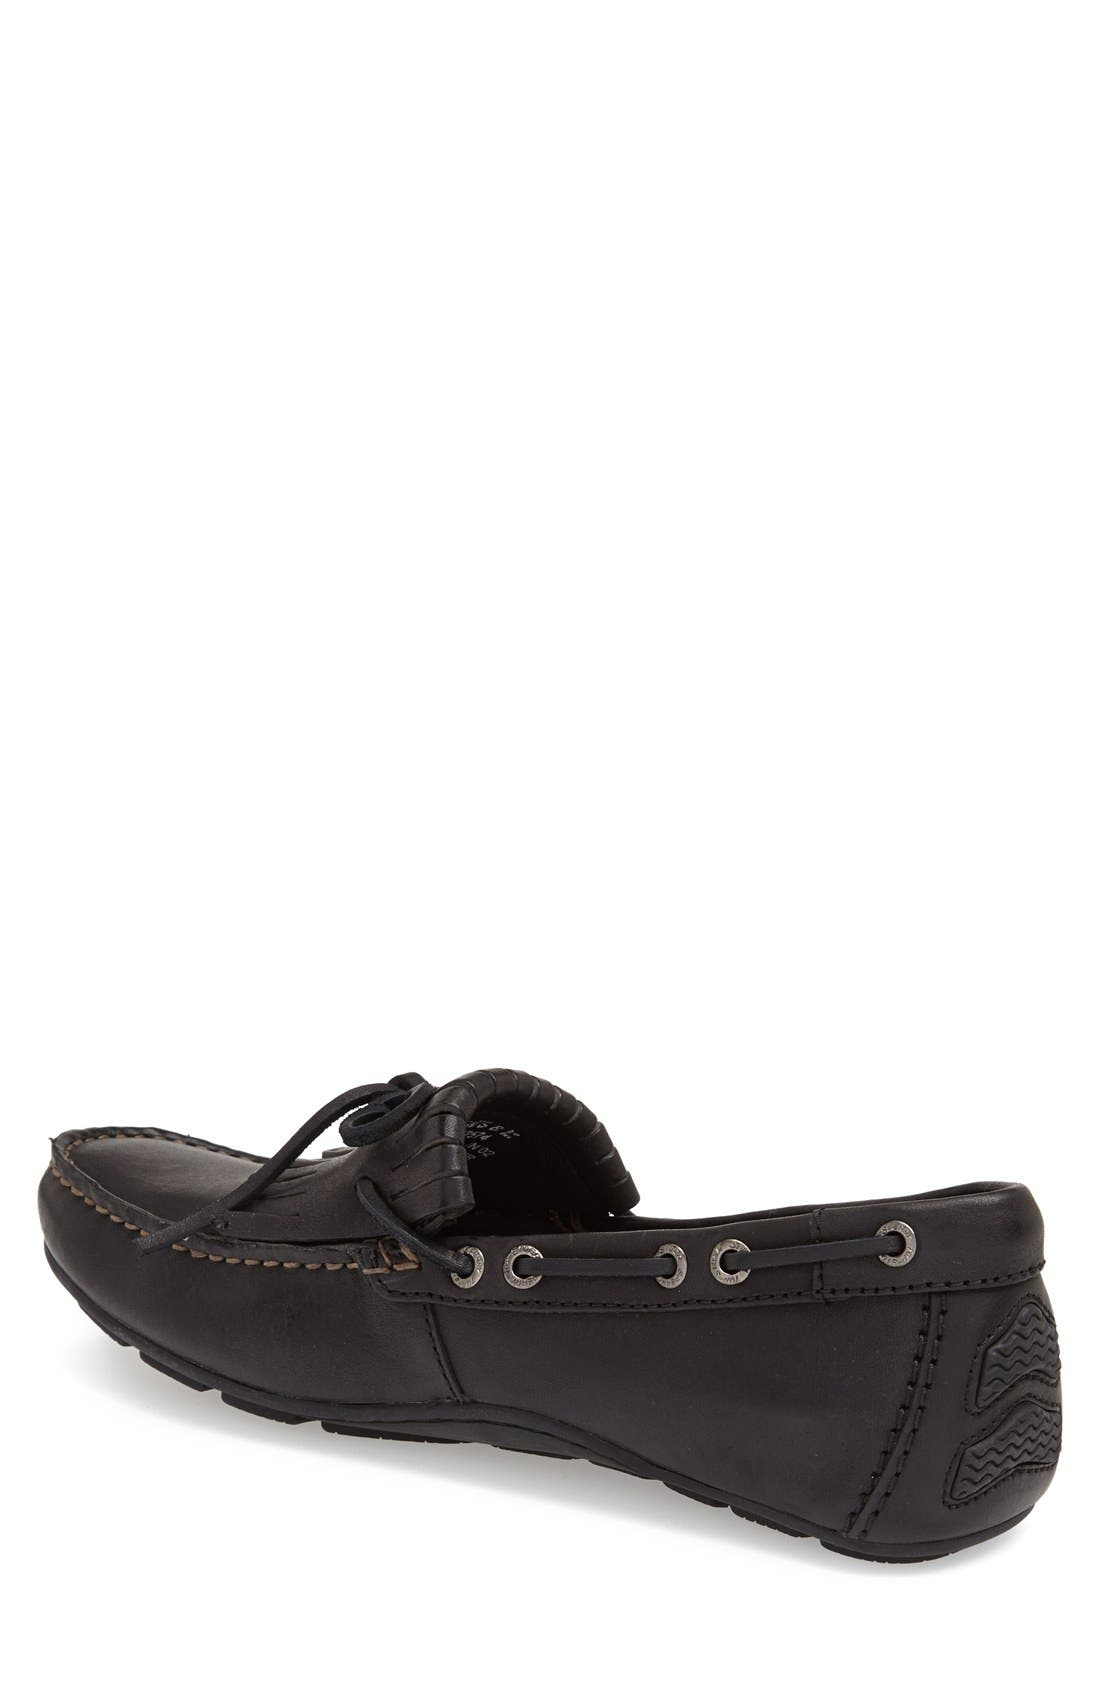 Alternate Image 2  - Sperry Top-Sider® 'Wave Driver' Driving Shoe